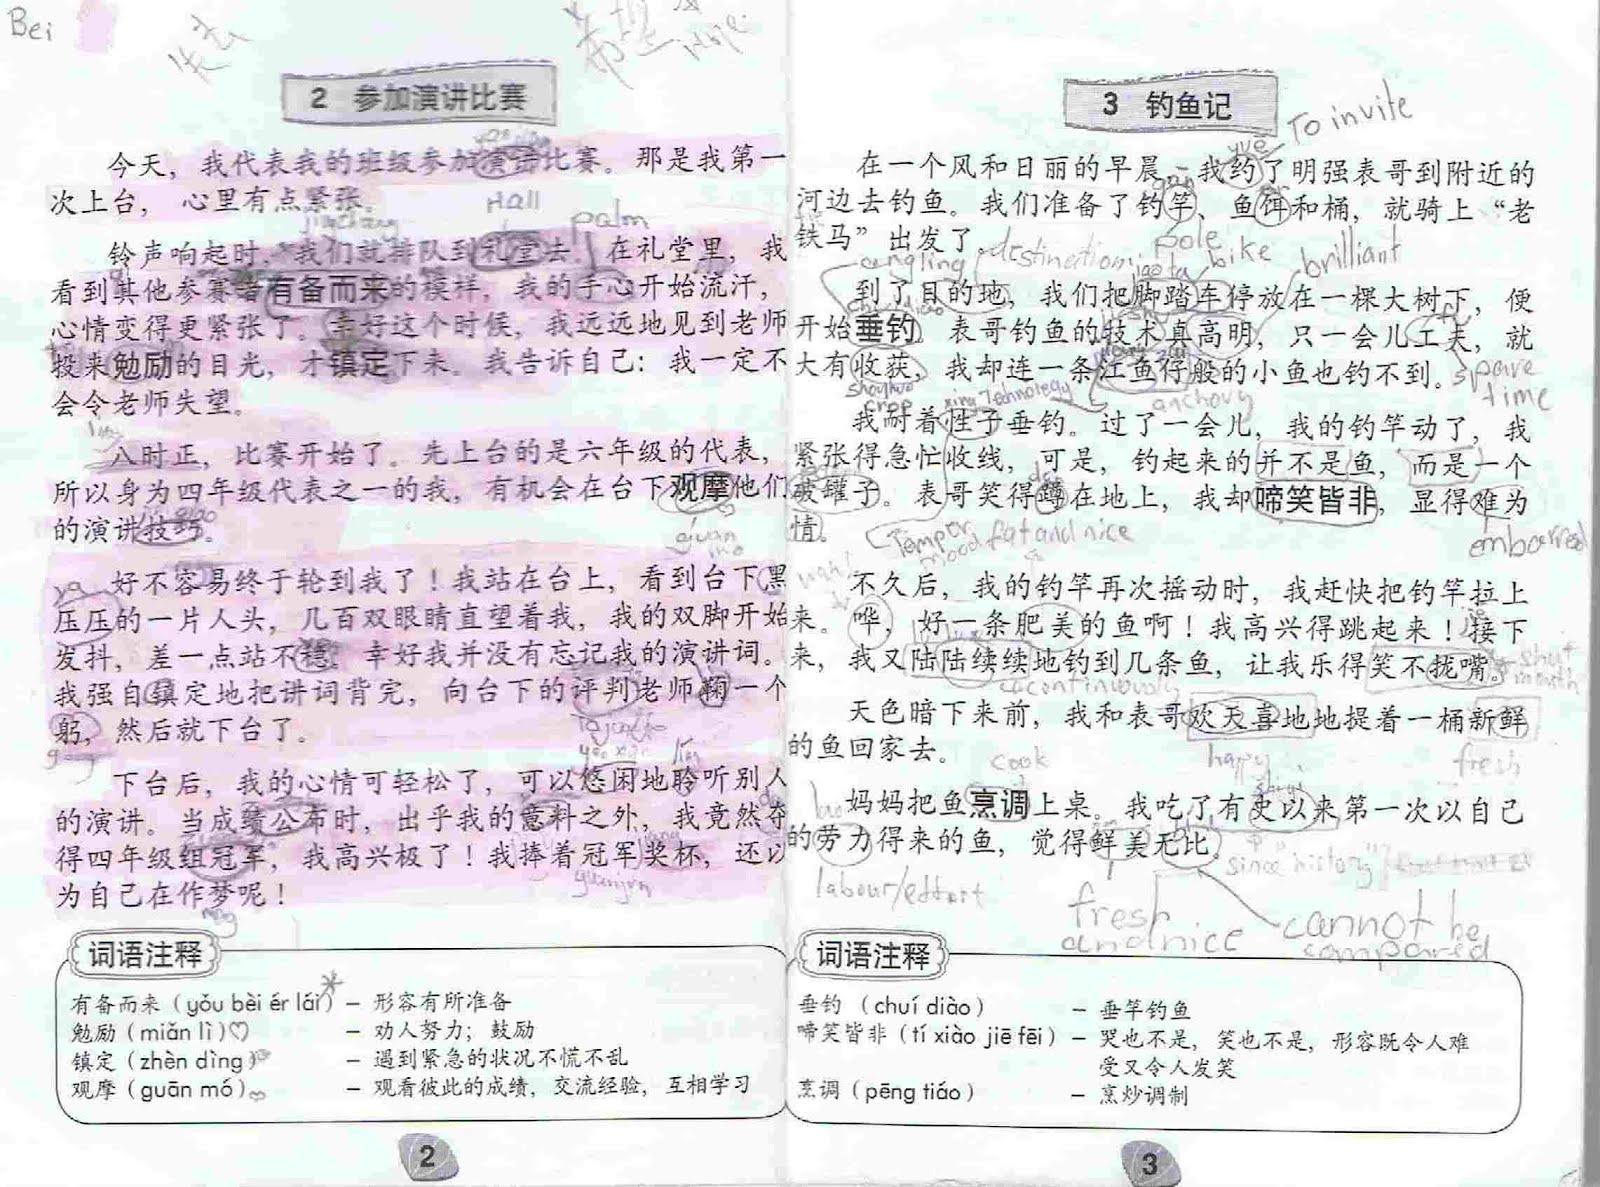 chinese essay sample reading and learning resources chinese sample reading and learning resources chinese sample essays aeligumliexclegraveoeligfnofaumlfrac12oeligaelig chinese sample essays